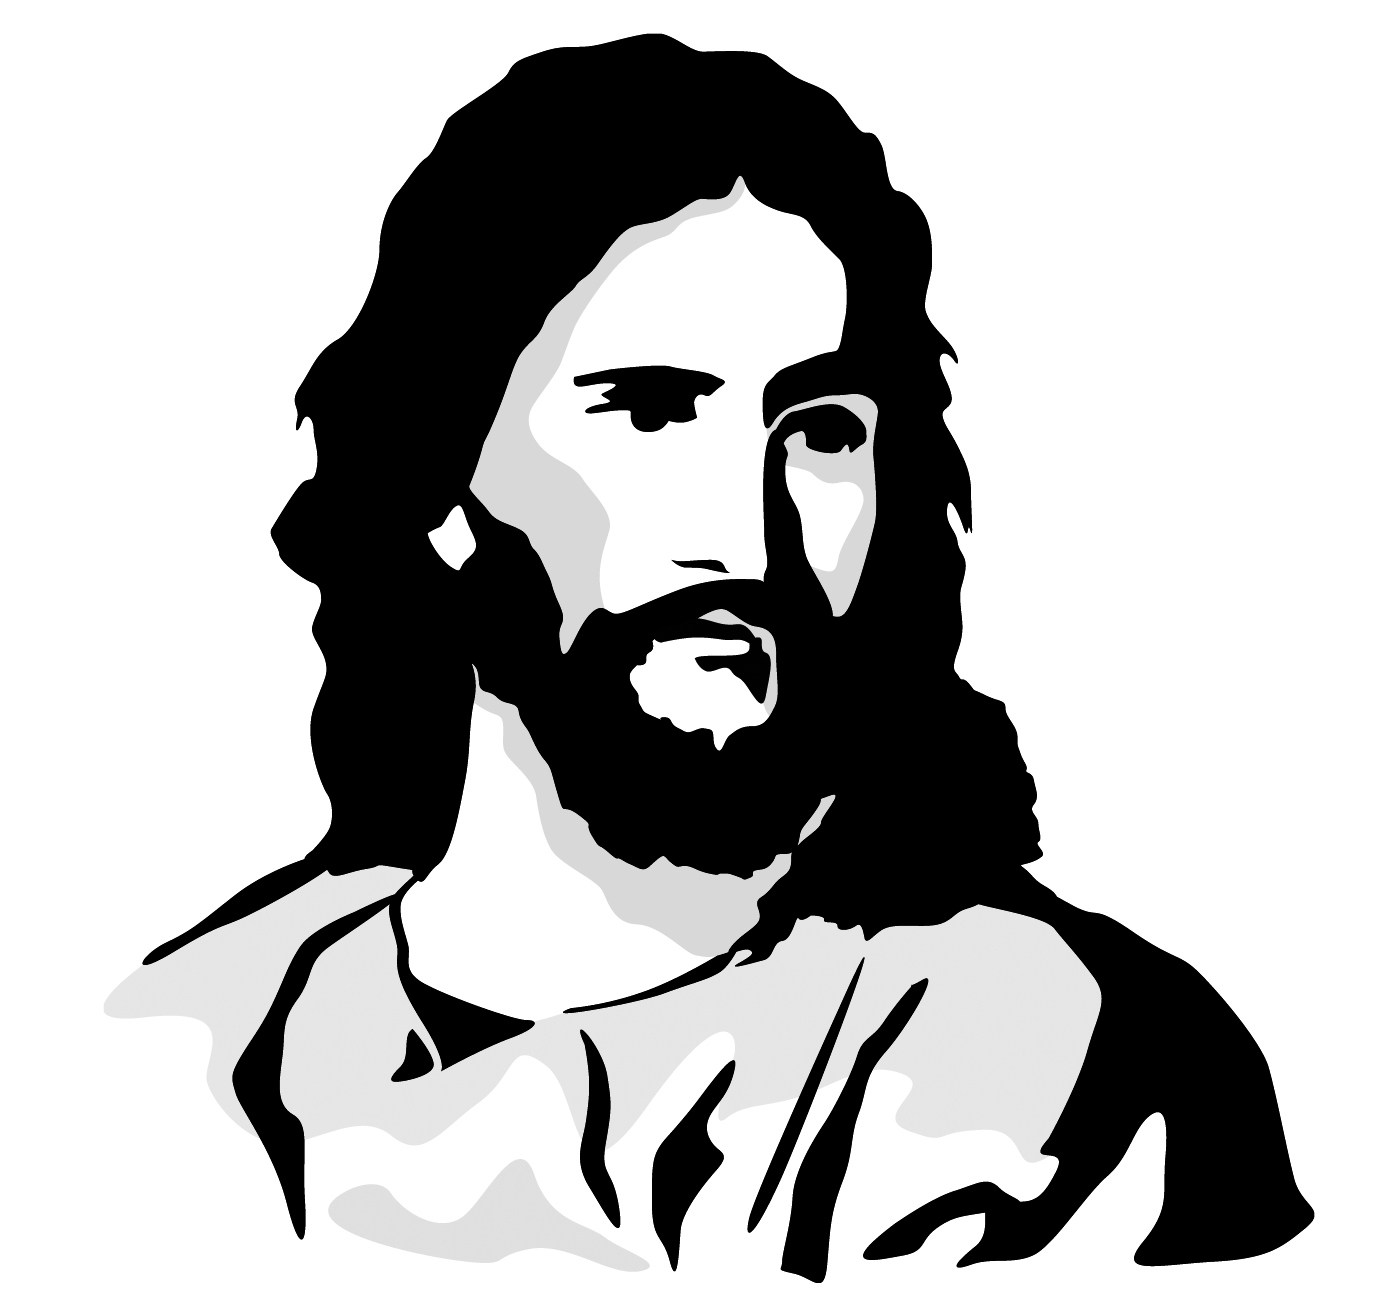 Clipart christian clipart images of jesus 2 image #2489.